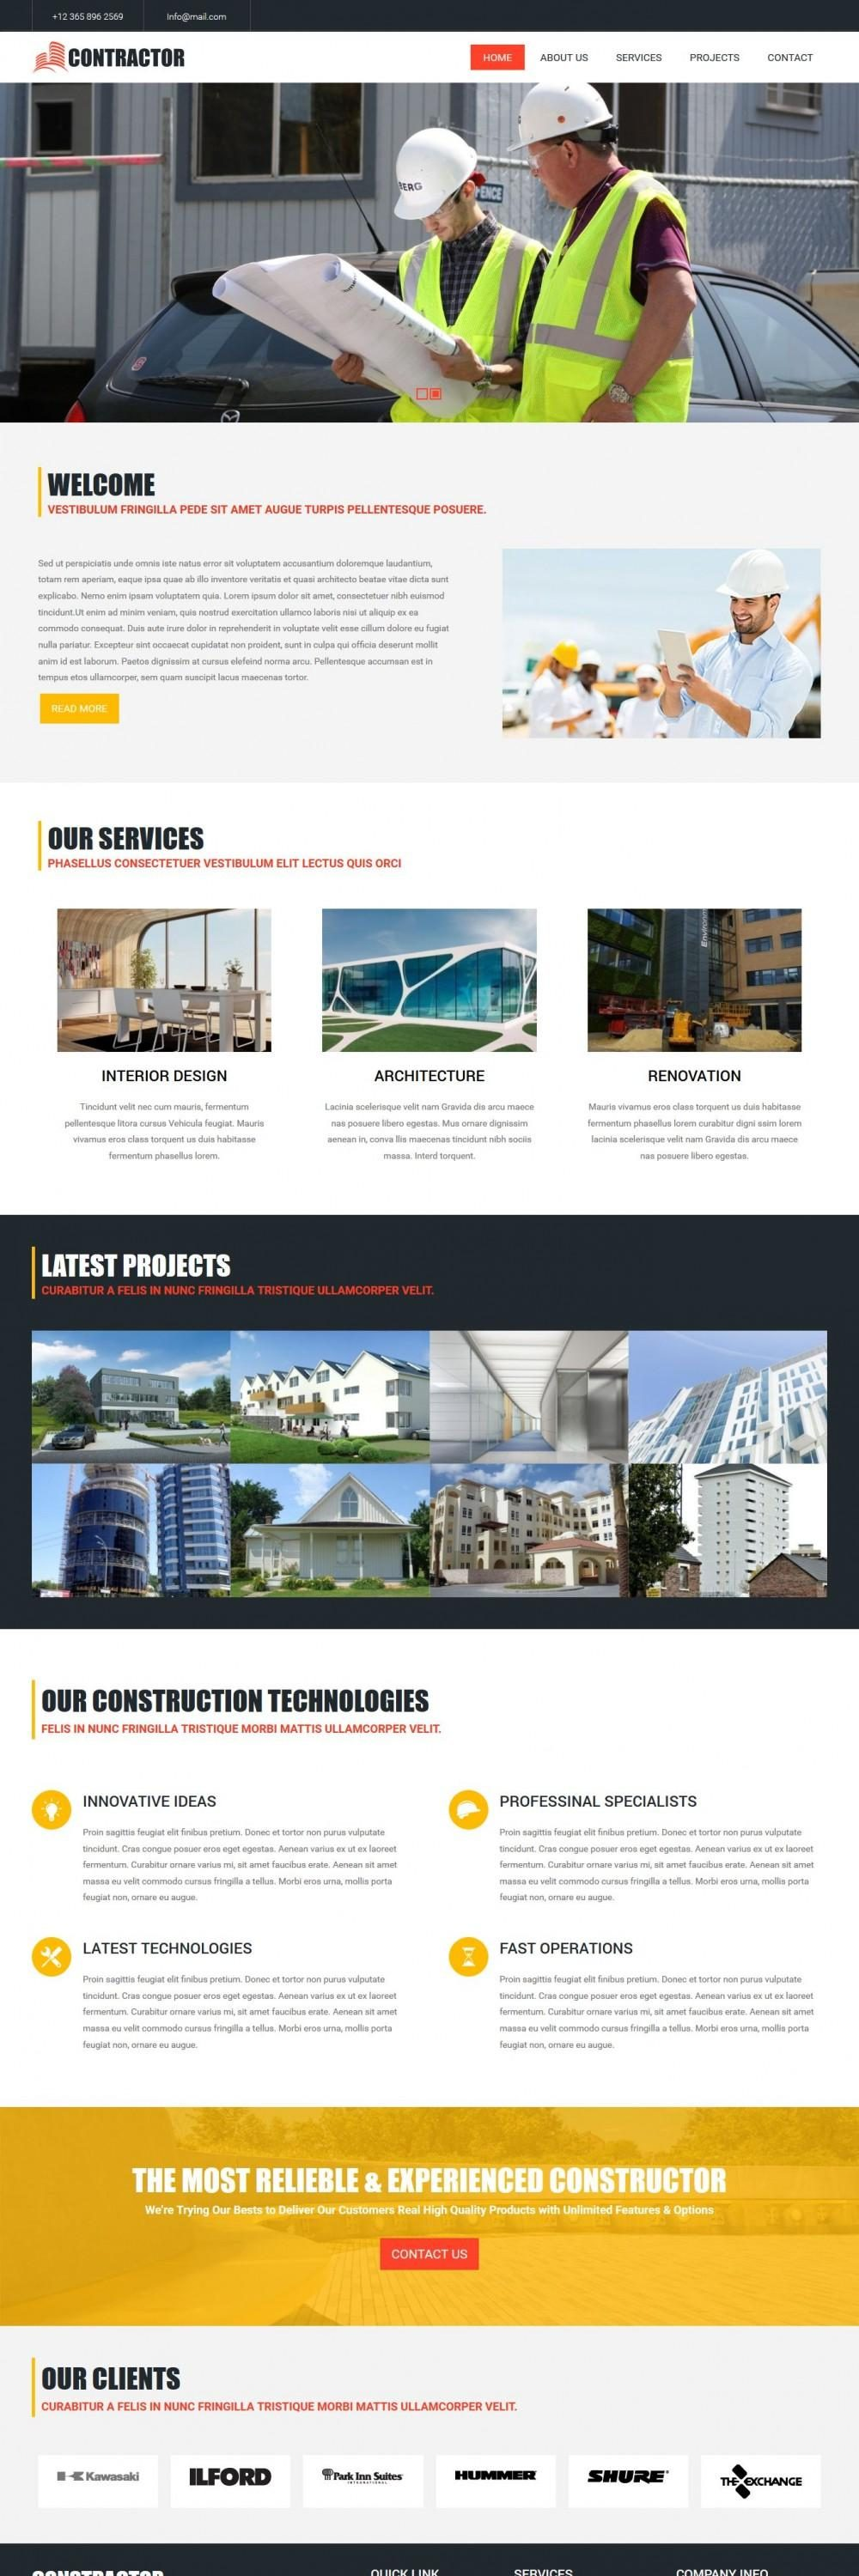 Contractor - Amazing Joomla Template for Construction Business